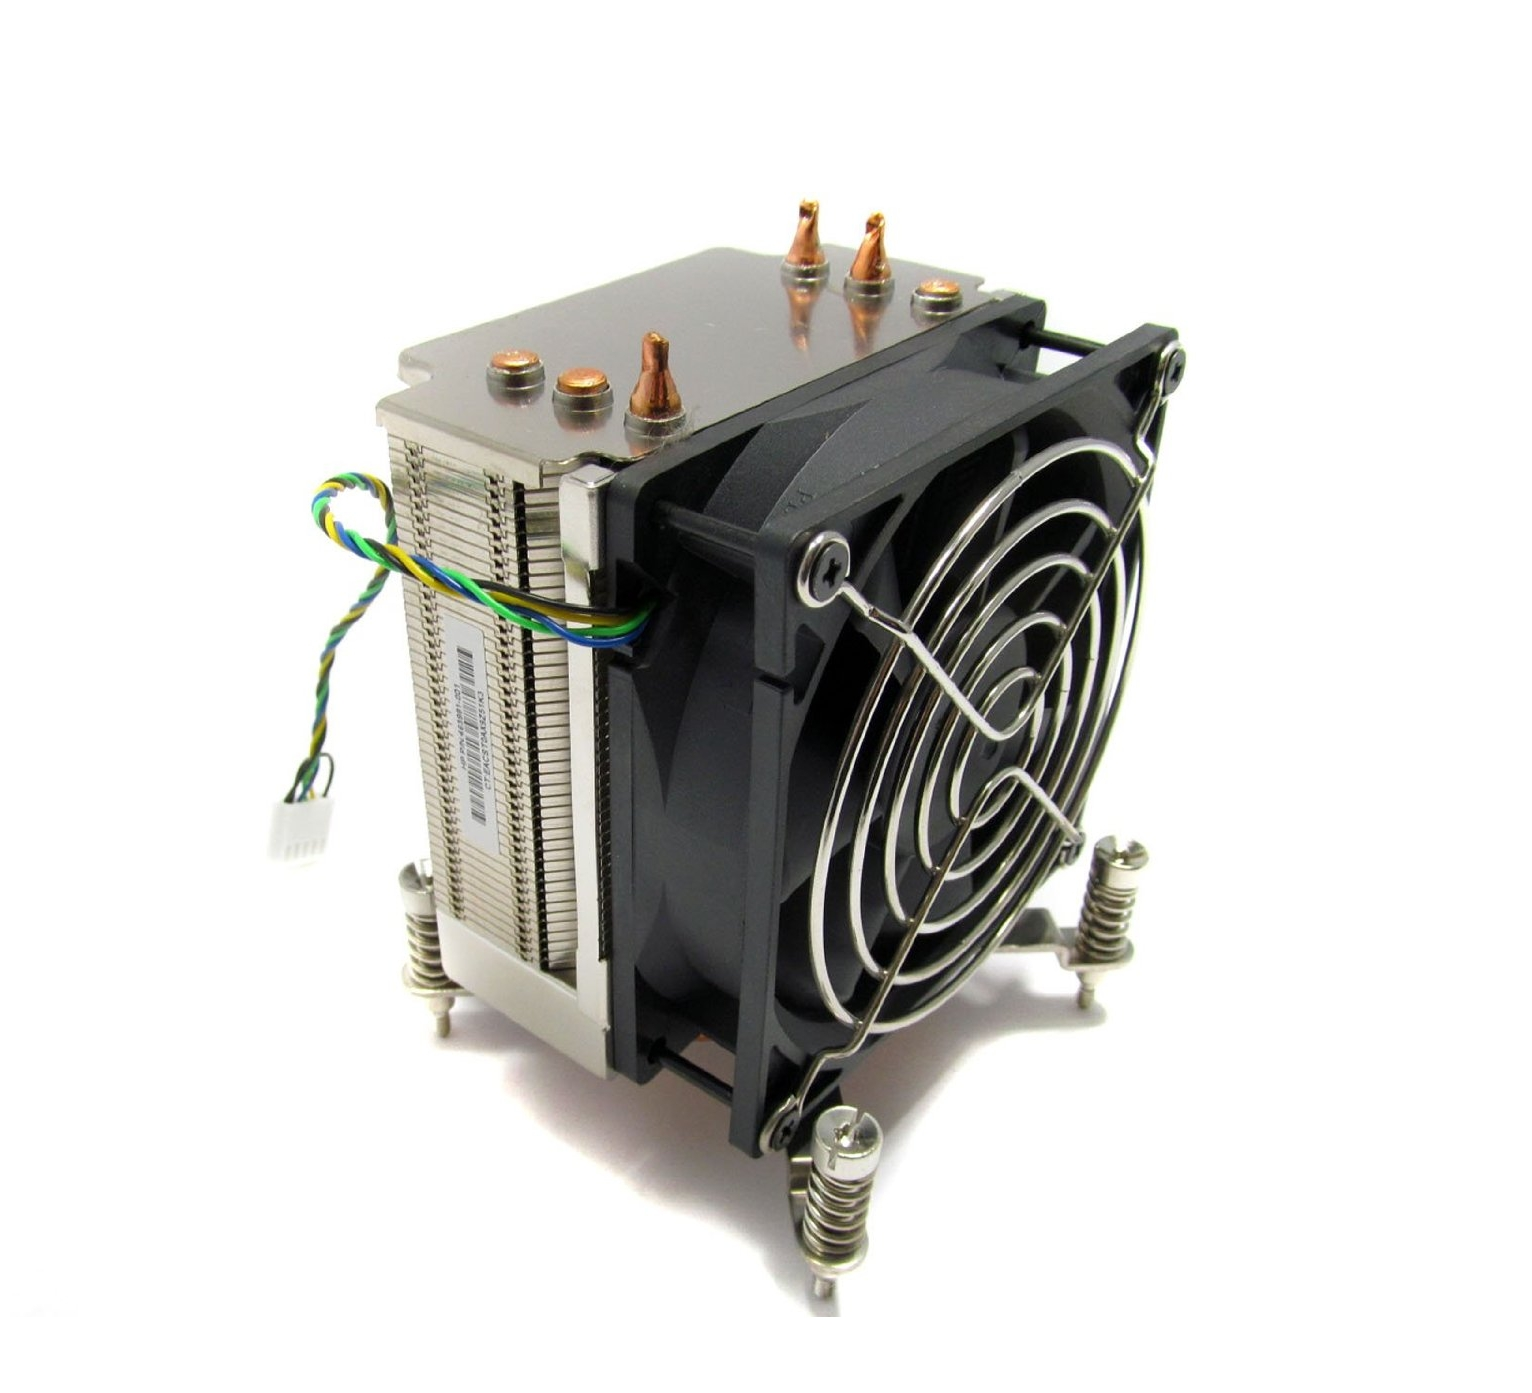 HP Z400 Workstation CPU Heatsink and Fan Assembly HP P/N NO: 463981-001